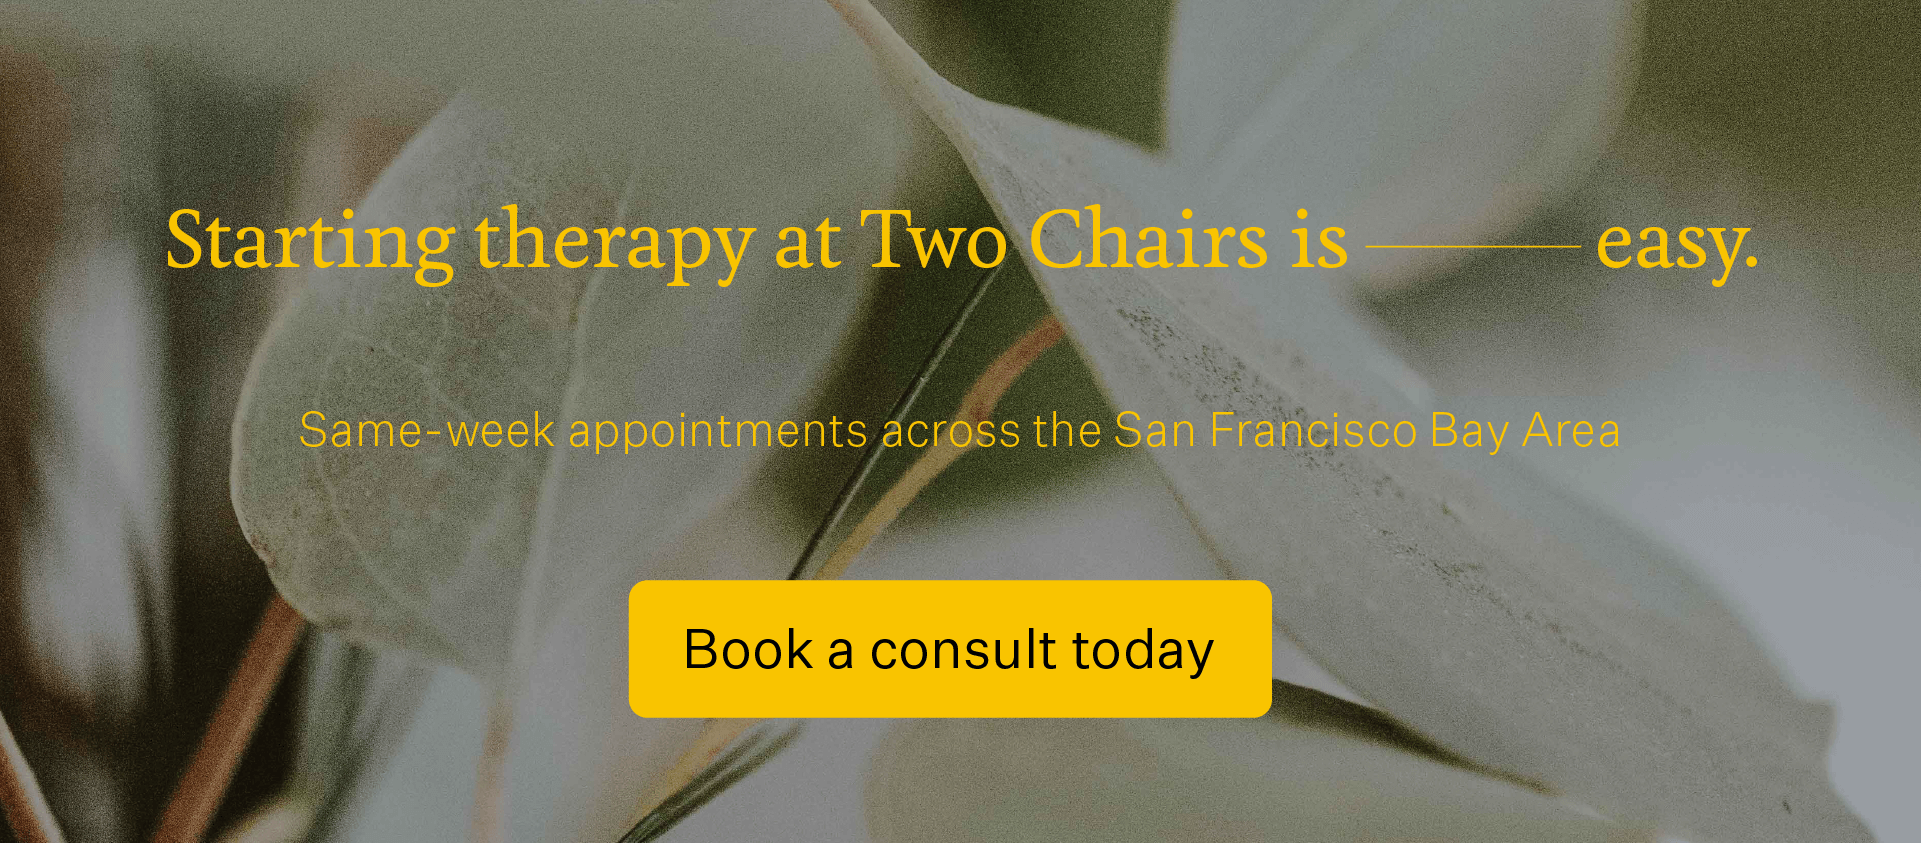 Click here to book a consult at Two Chairs